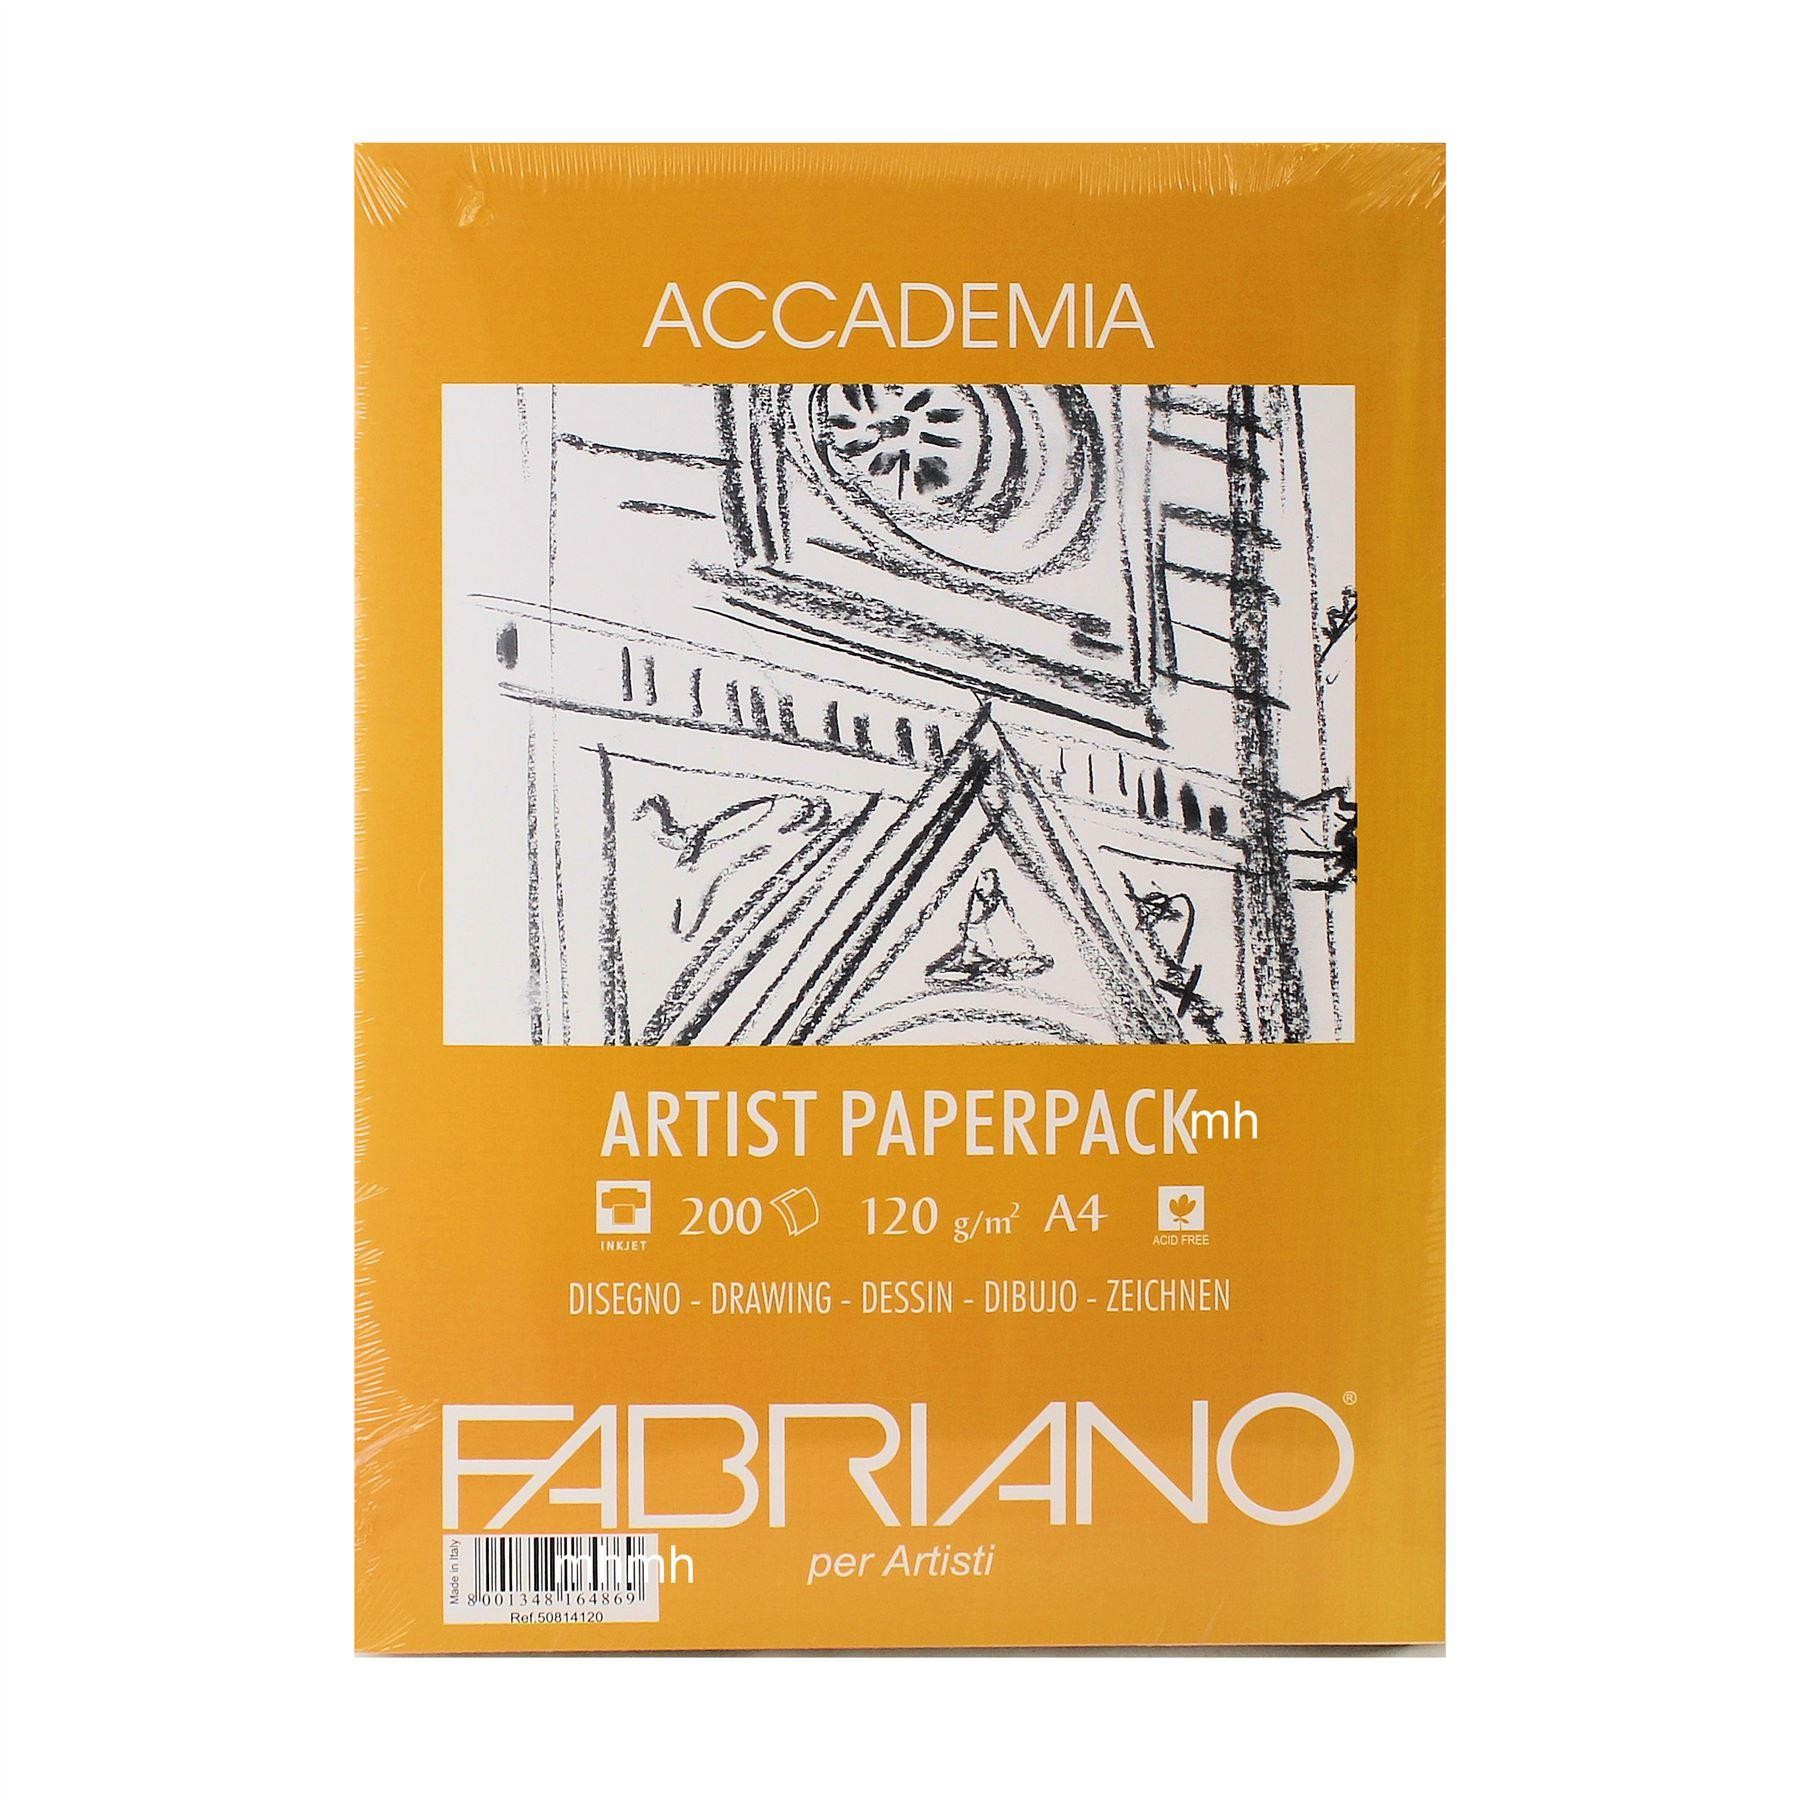 Fabriano Accademia Artist Paperpack in sizes A4 or A3, 12ogsm or 200gsm ,100 or 200 Sheets